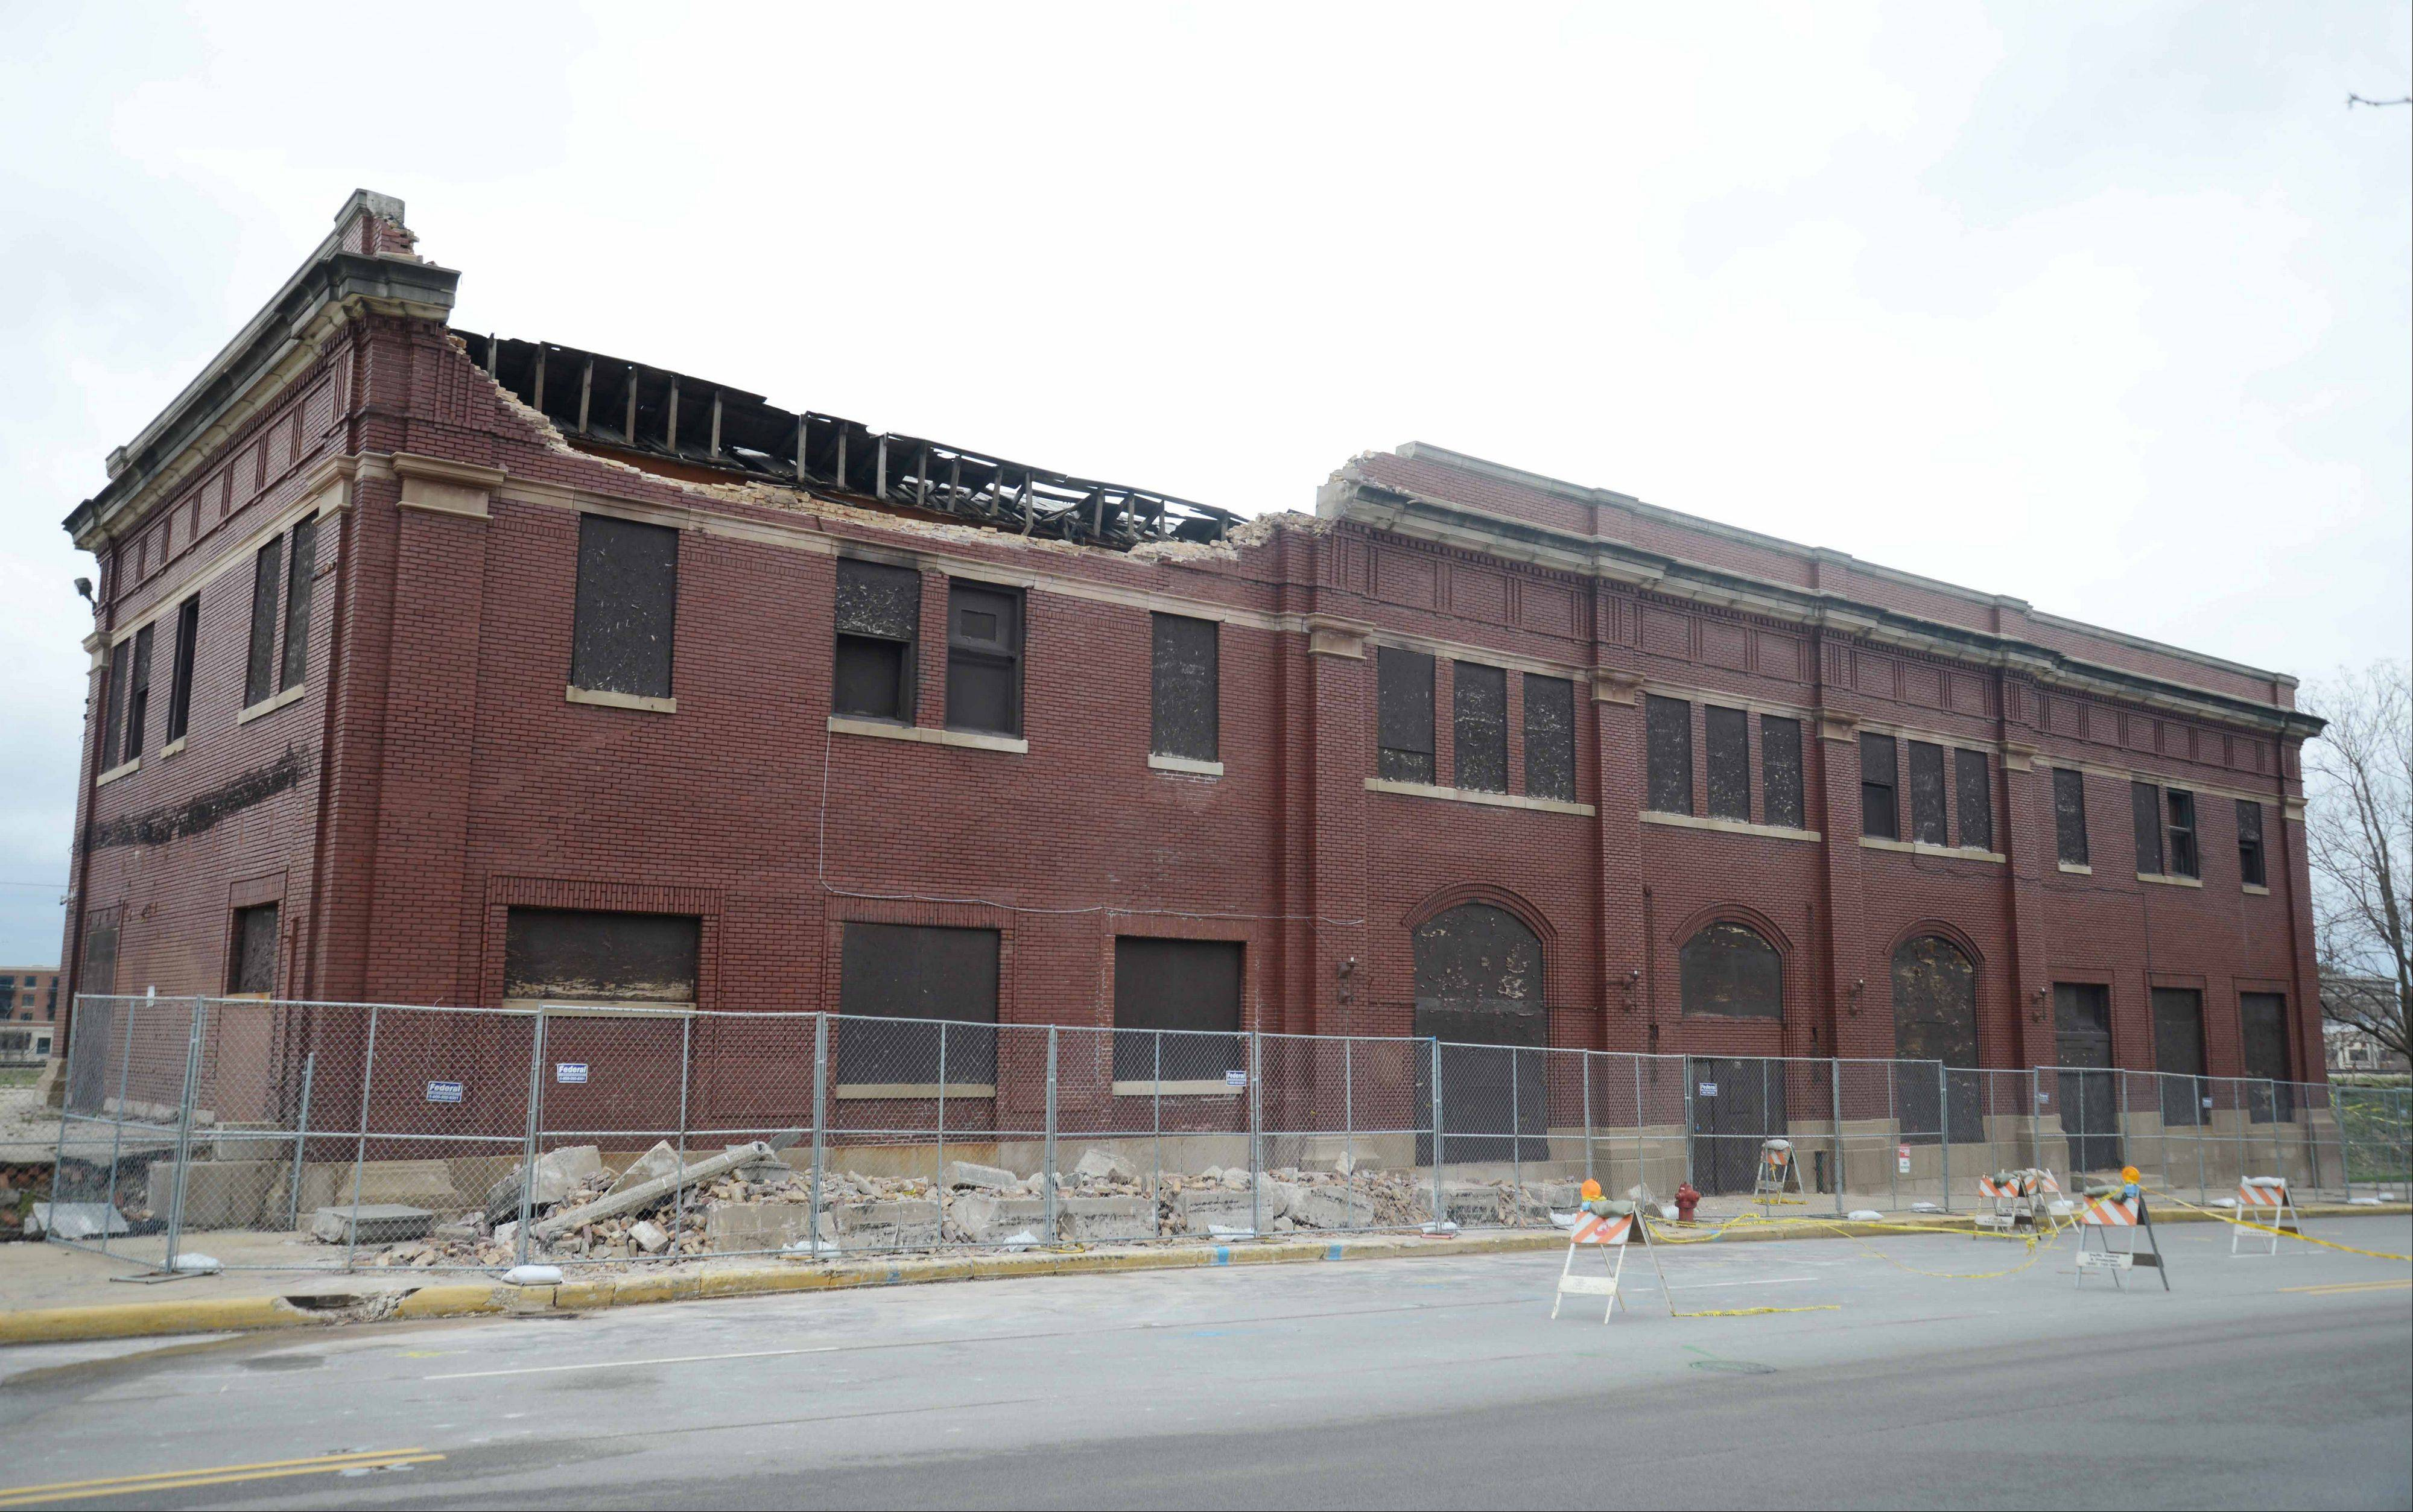 The roof of a former train depot on Broadway Avenue in Aurora collapsed, causing closure of the road for some of Friday. The building�s owner wants to demolish it.